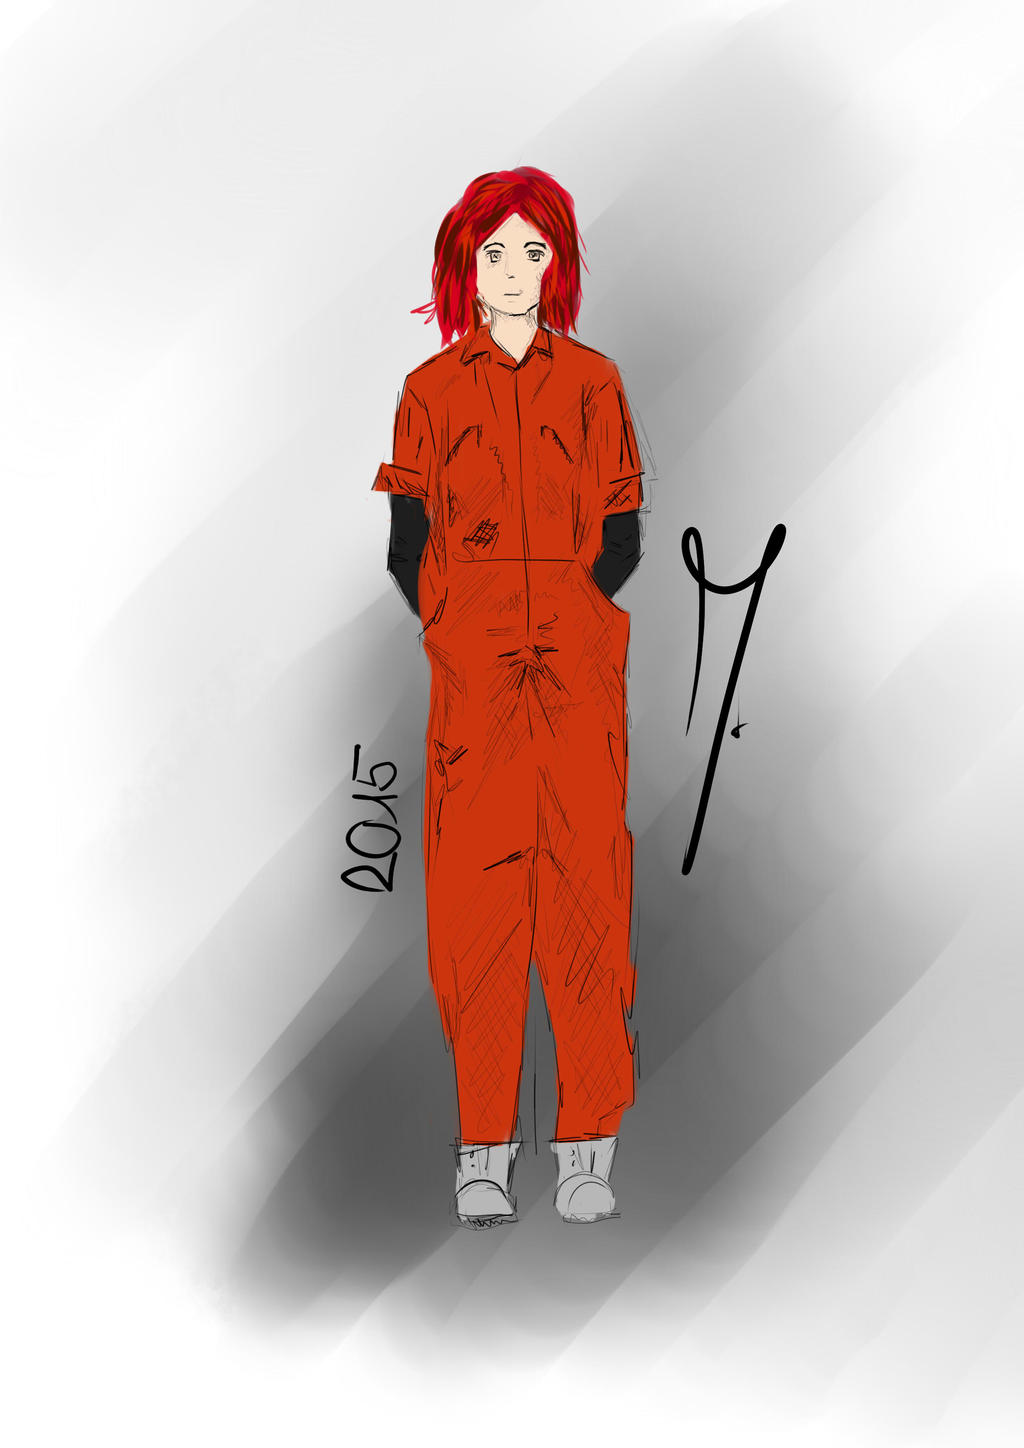 Abby from Misfits by OrionLine